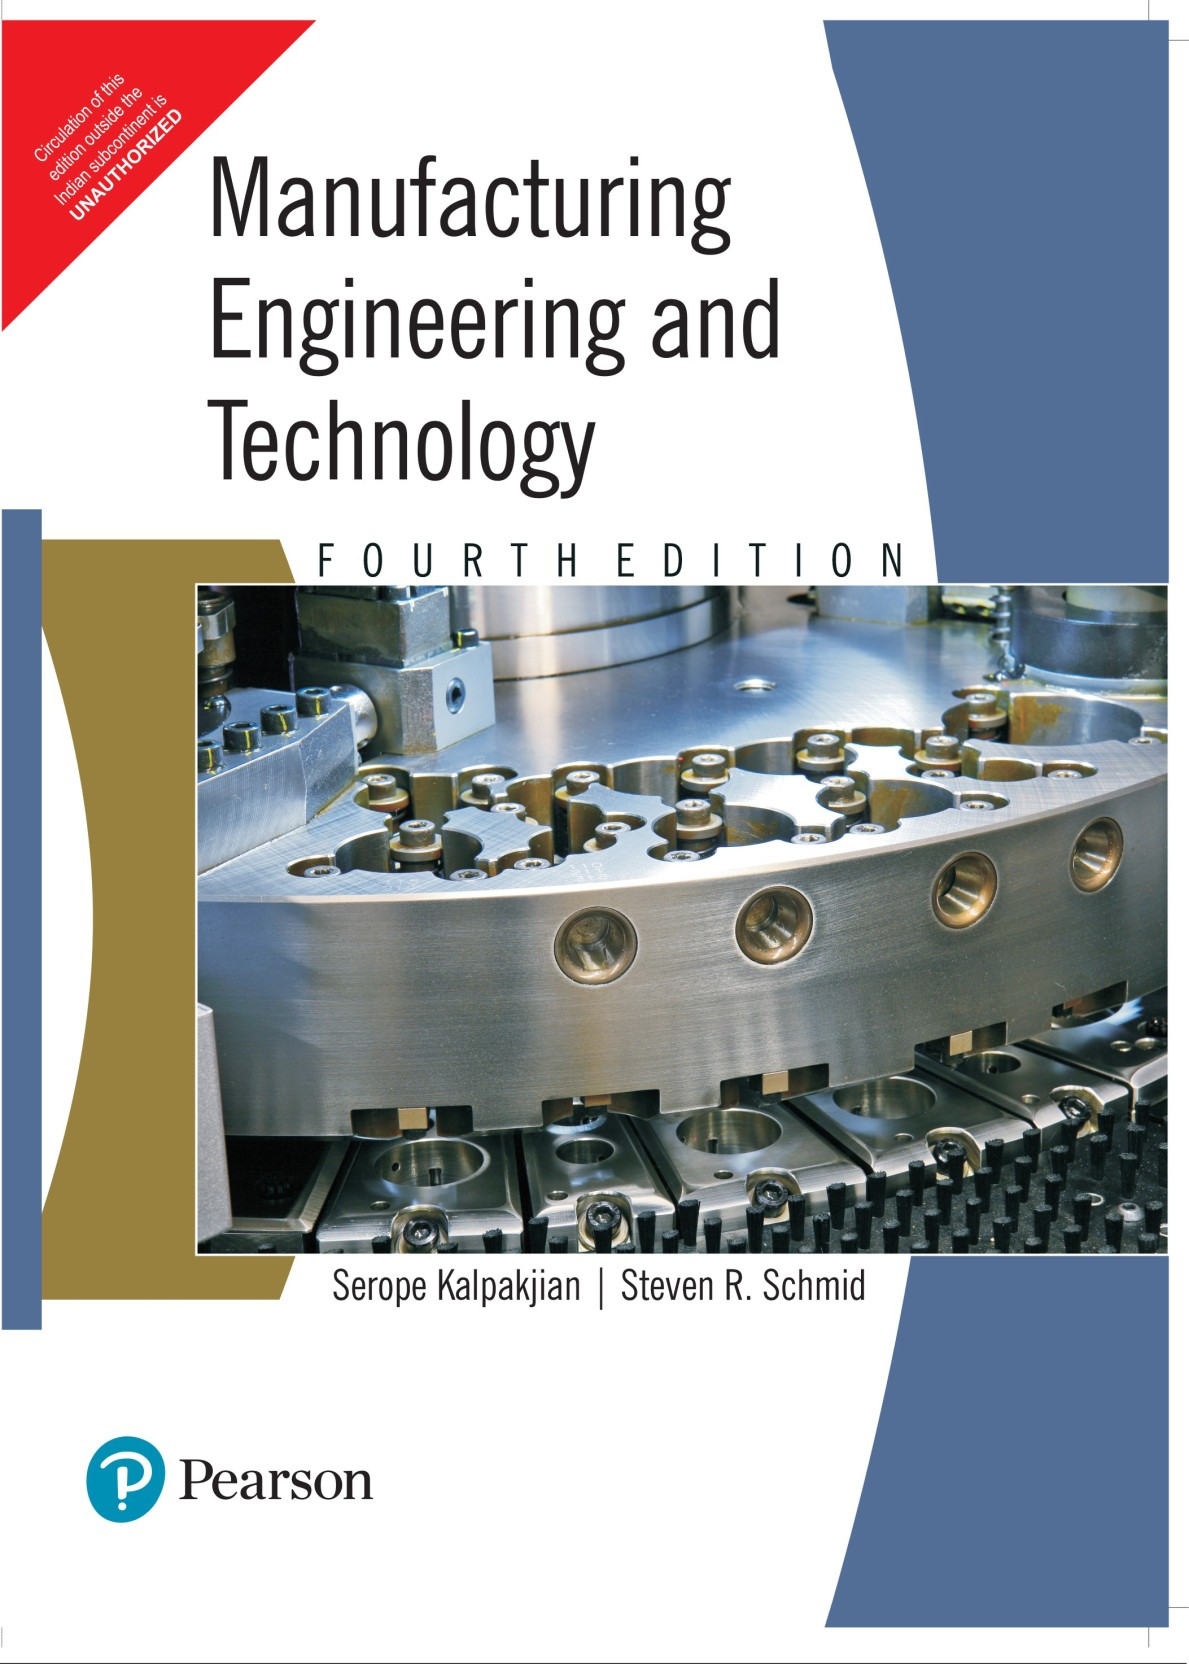 Manufacturing Engineering and Technology 4th Edition. ADD TO CART